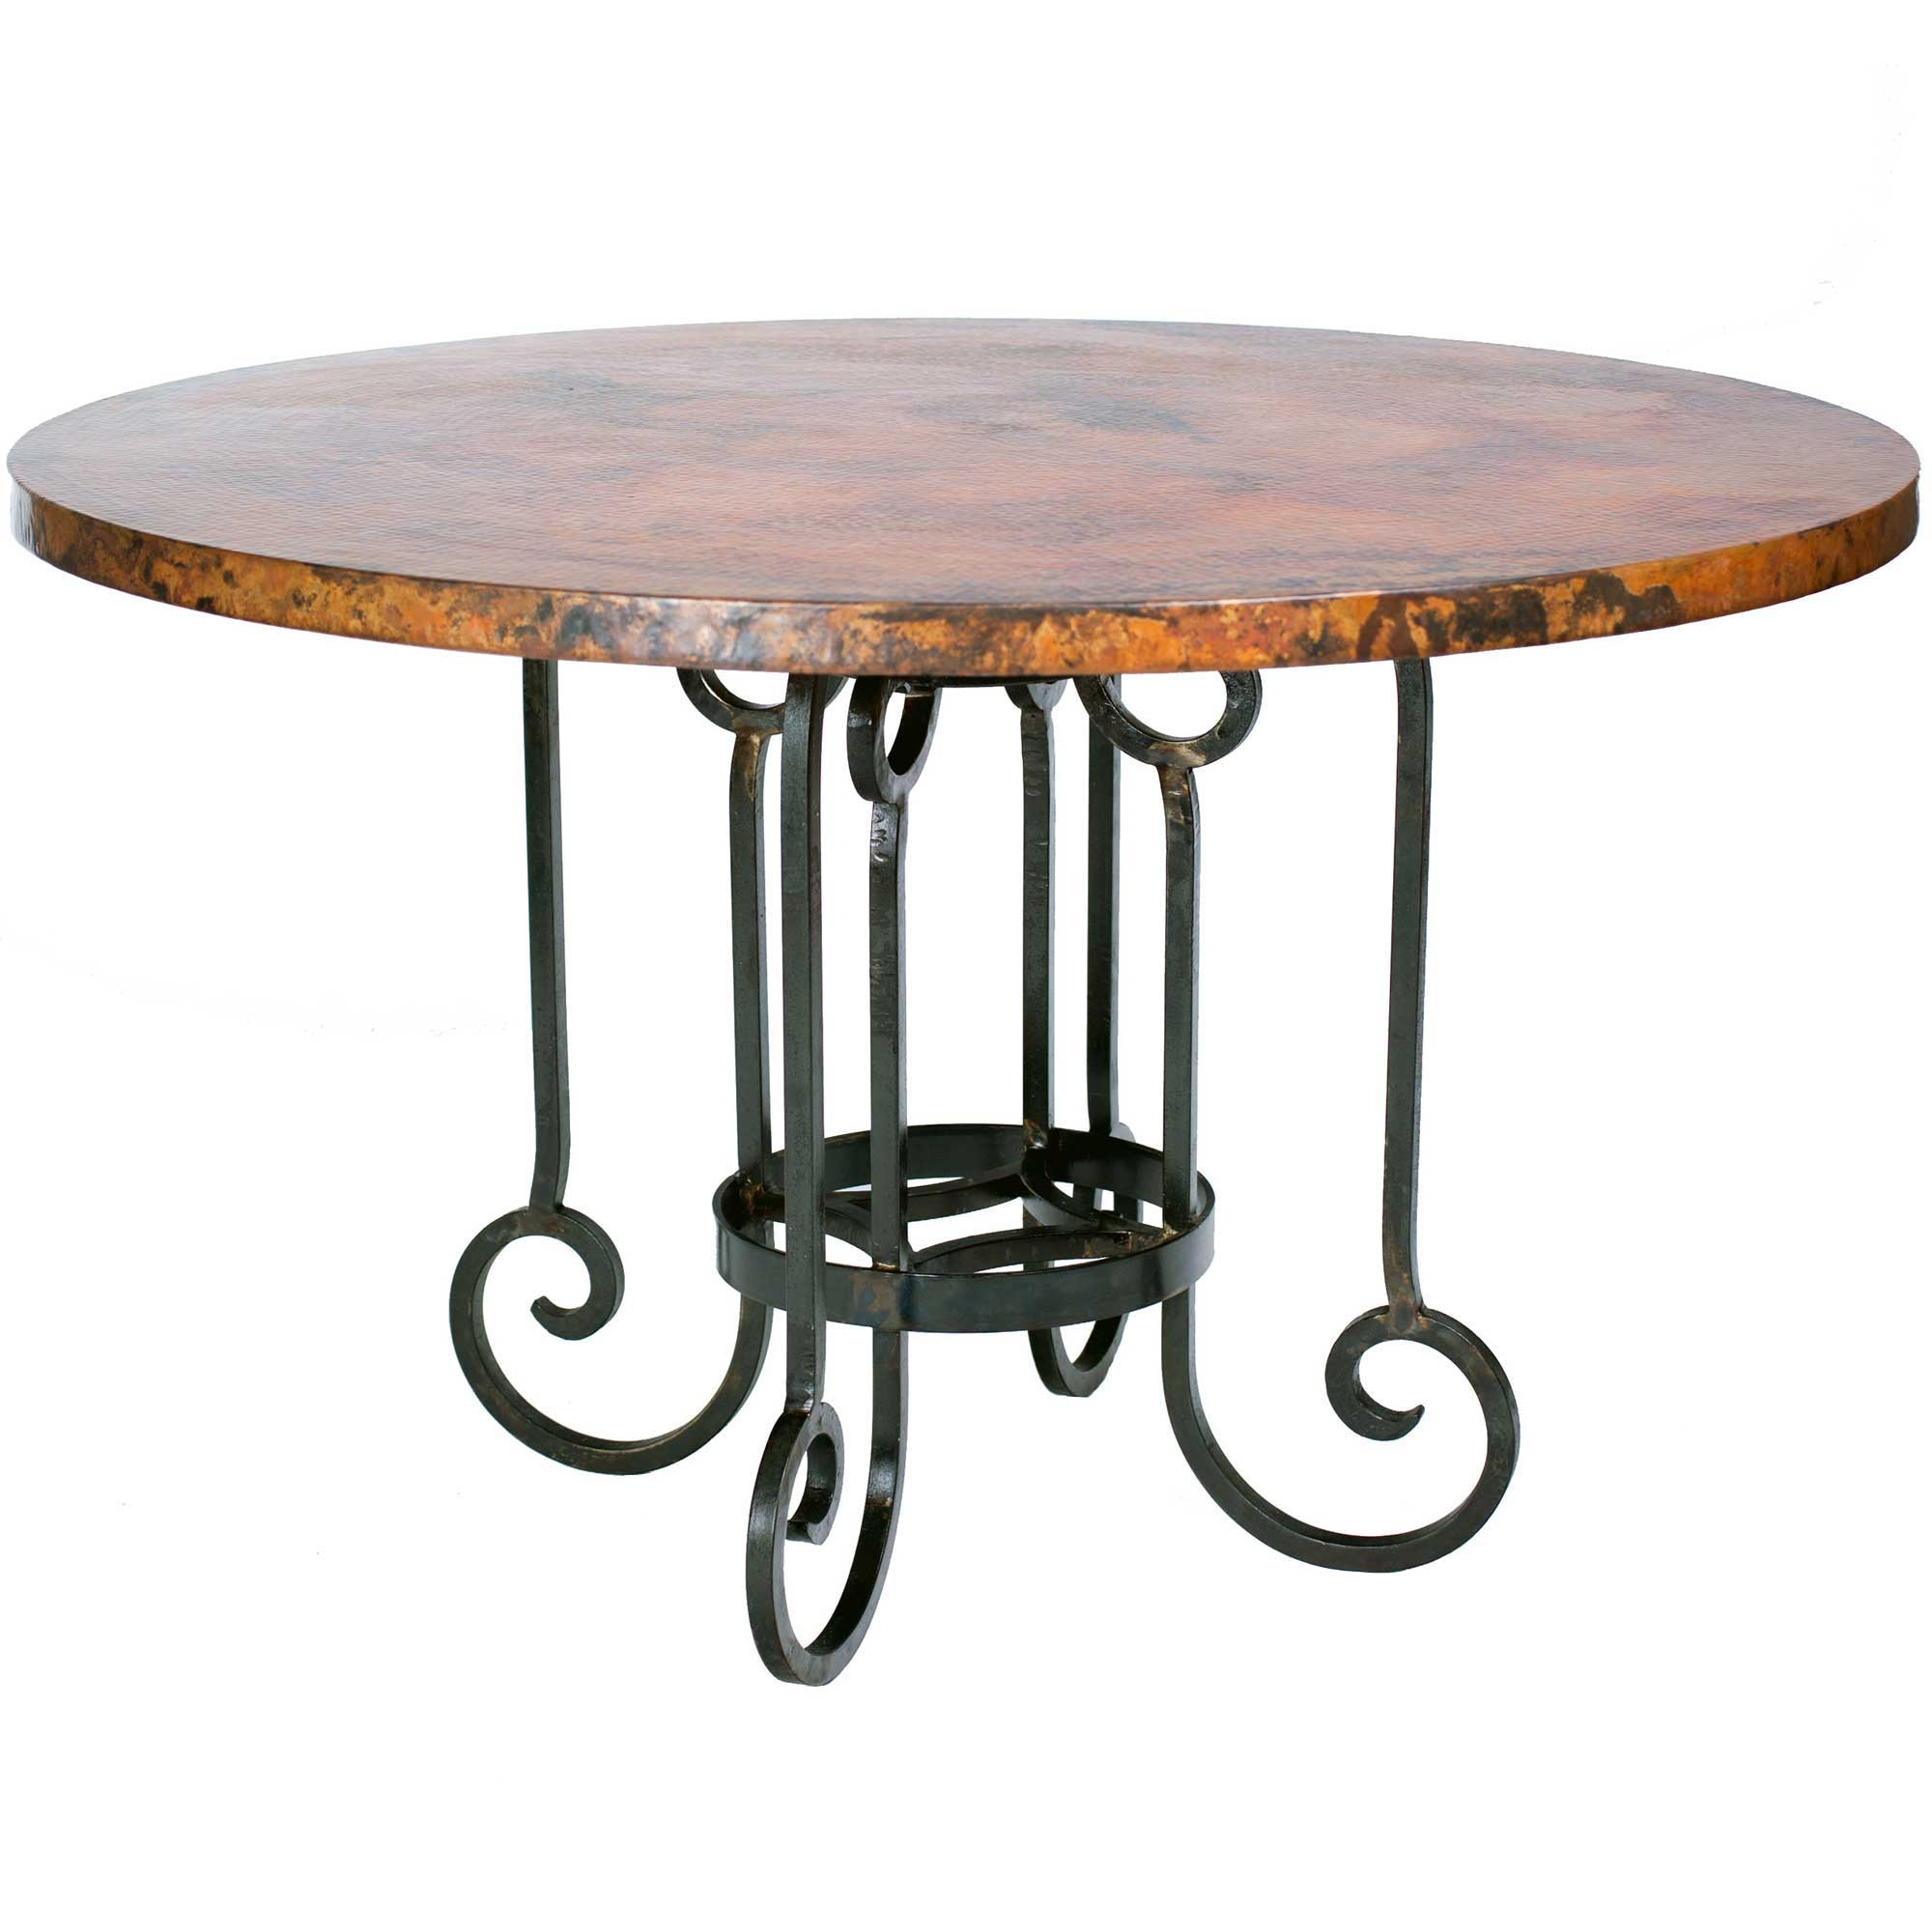 Curled Leg Iron Dining Table With Round Hammered Copper Top - Hammered copper round dining table